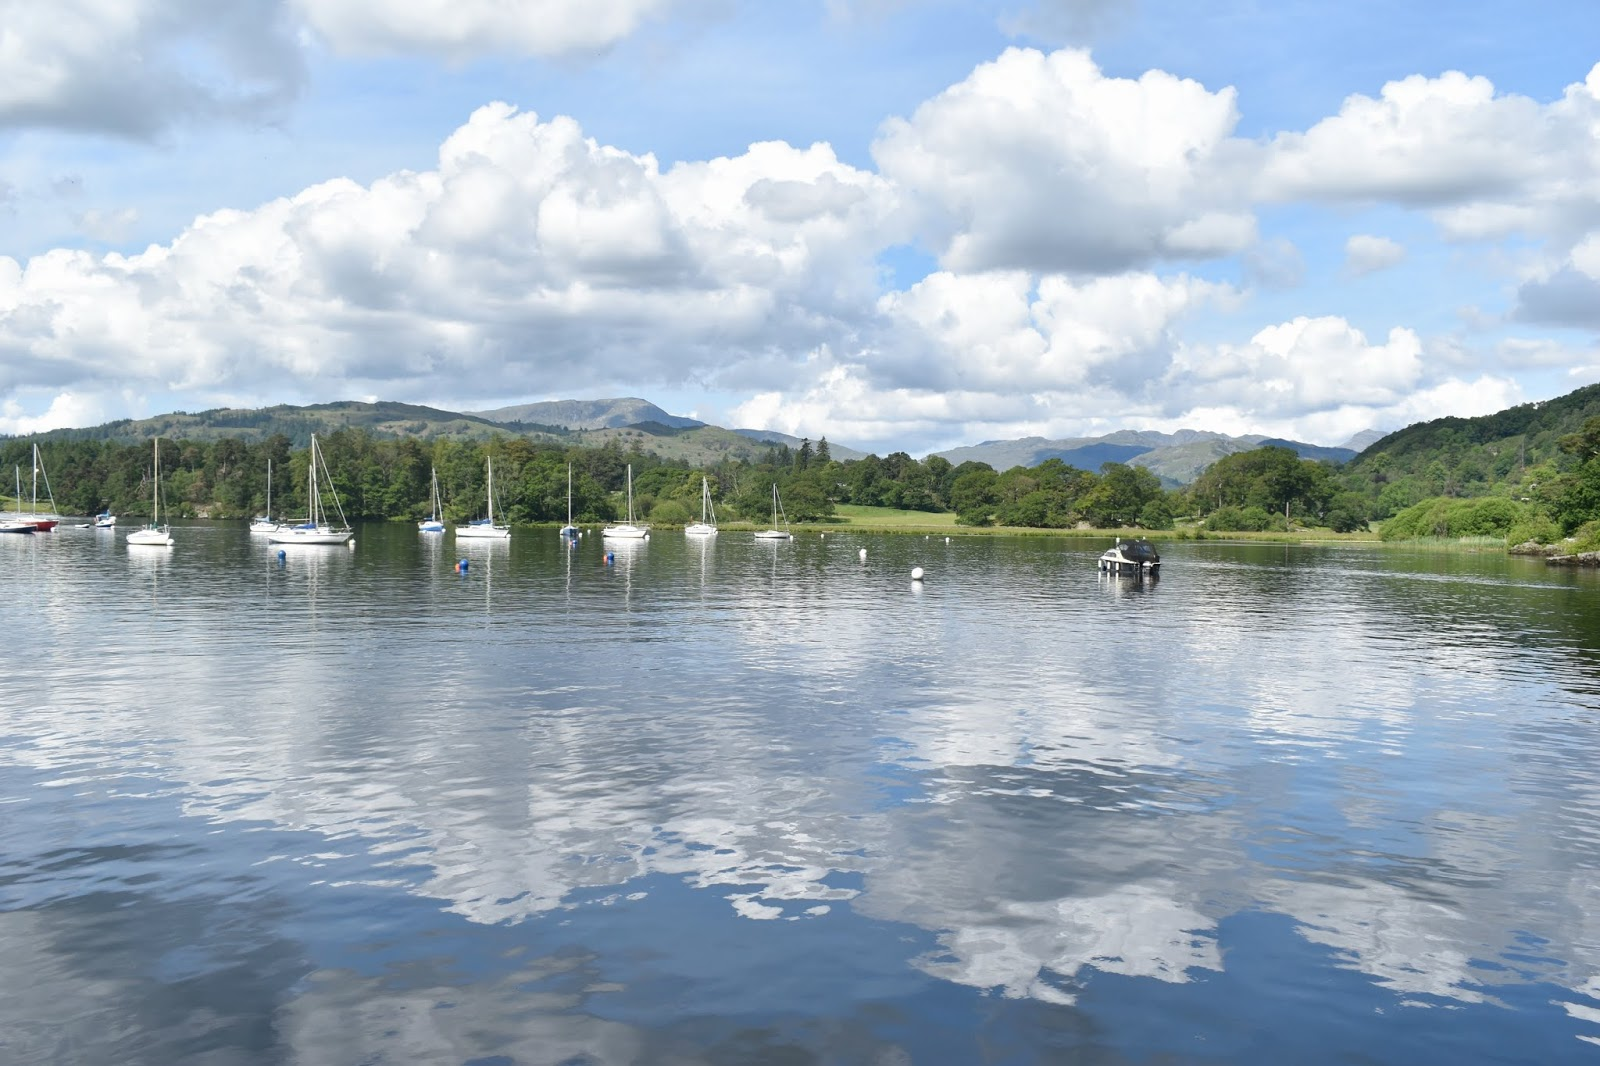 An Affordable Break in the Lake District - Sparkling Sundays at The Windermere Hotel with ukbreakaways